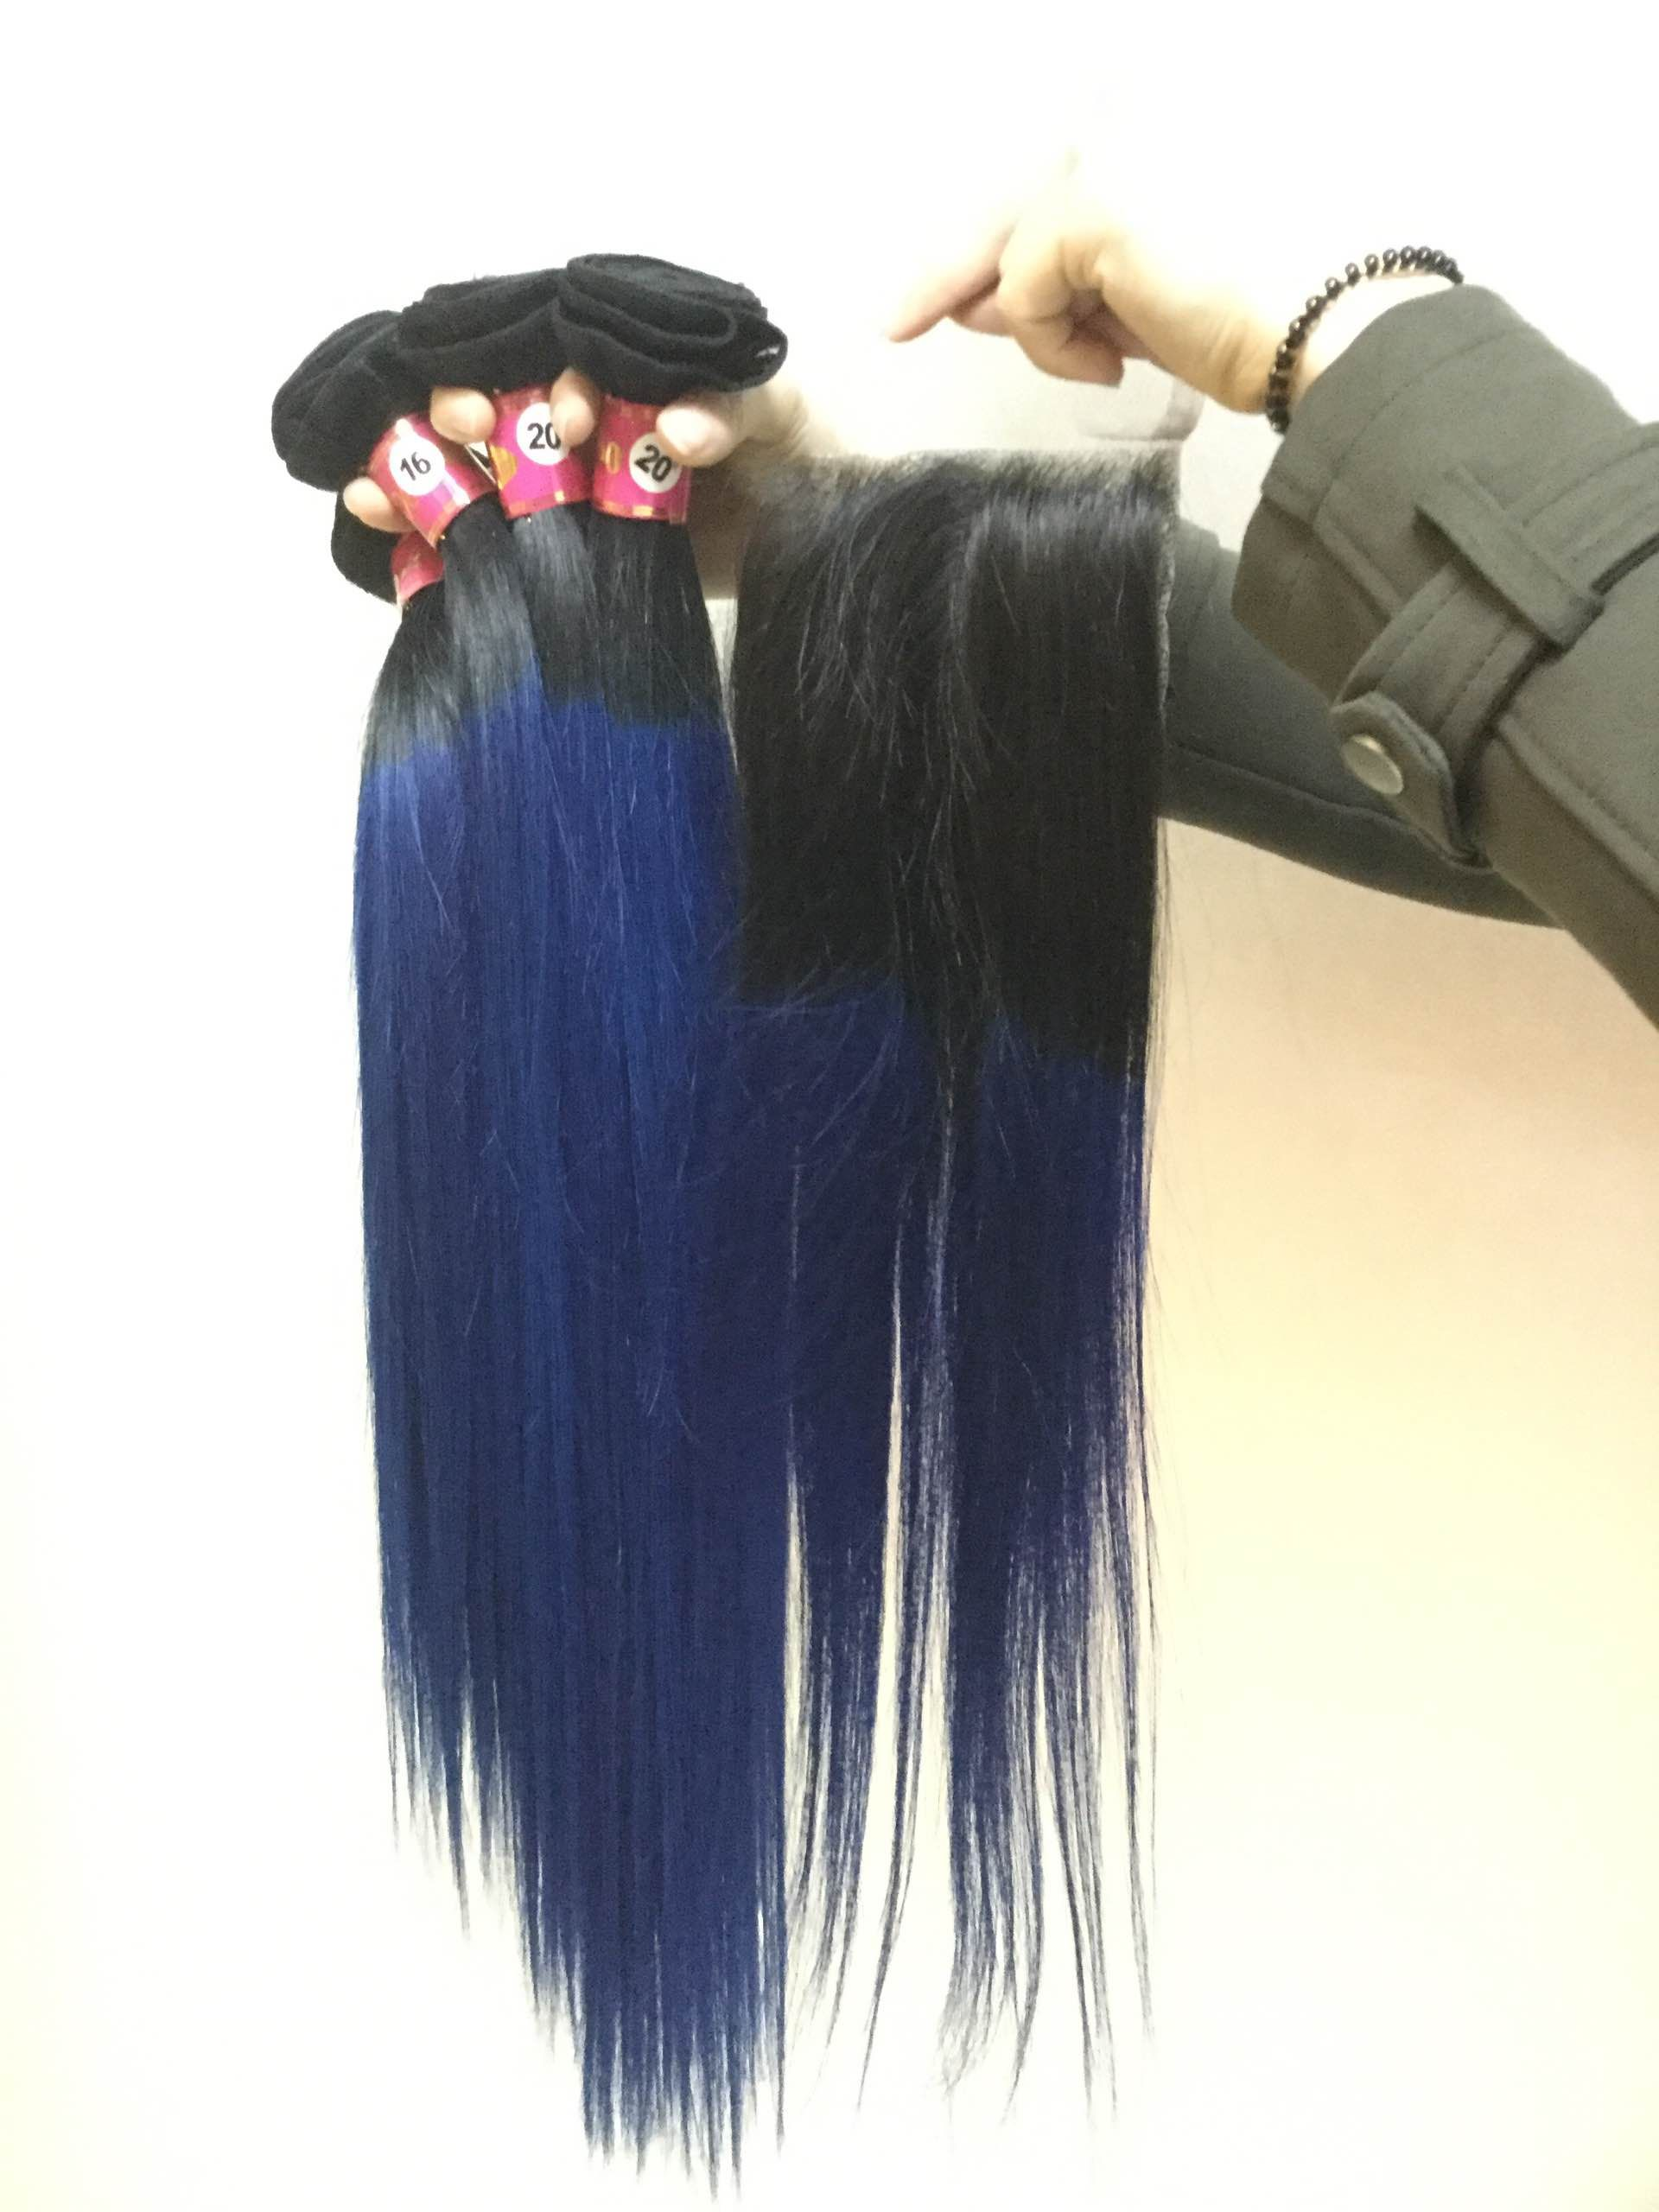 Micro Bead Ombre Hair Extensionseasy Weft Hair Extensions100